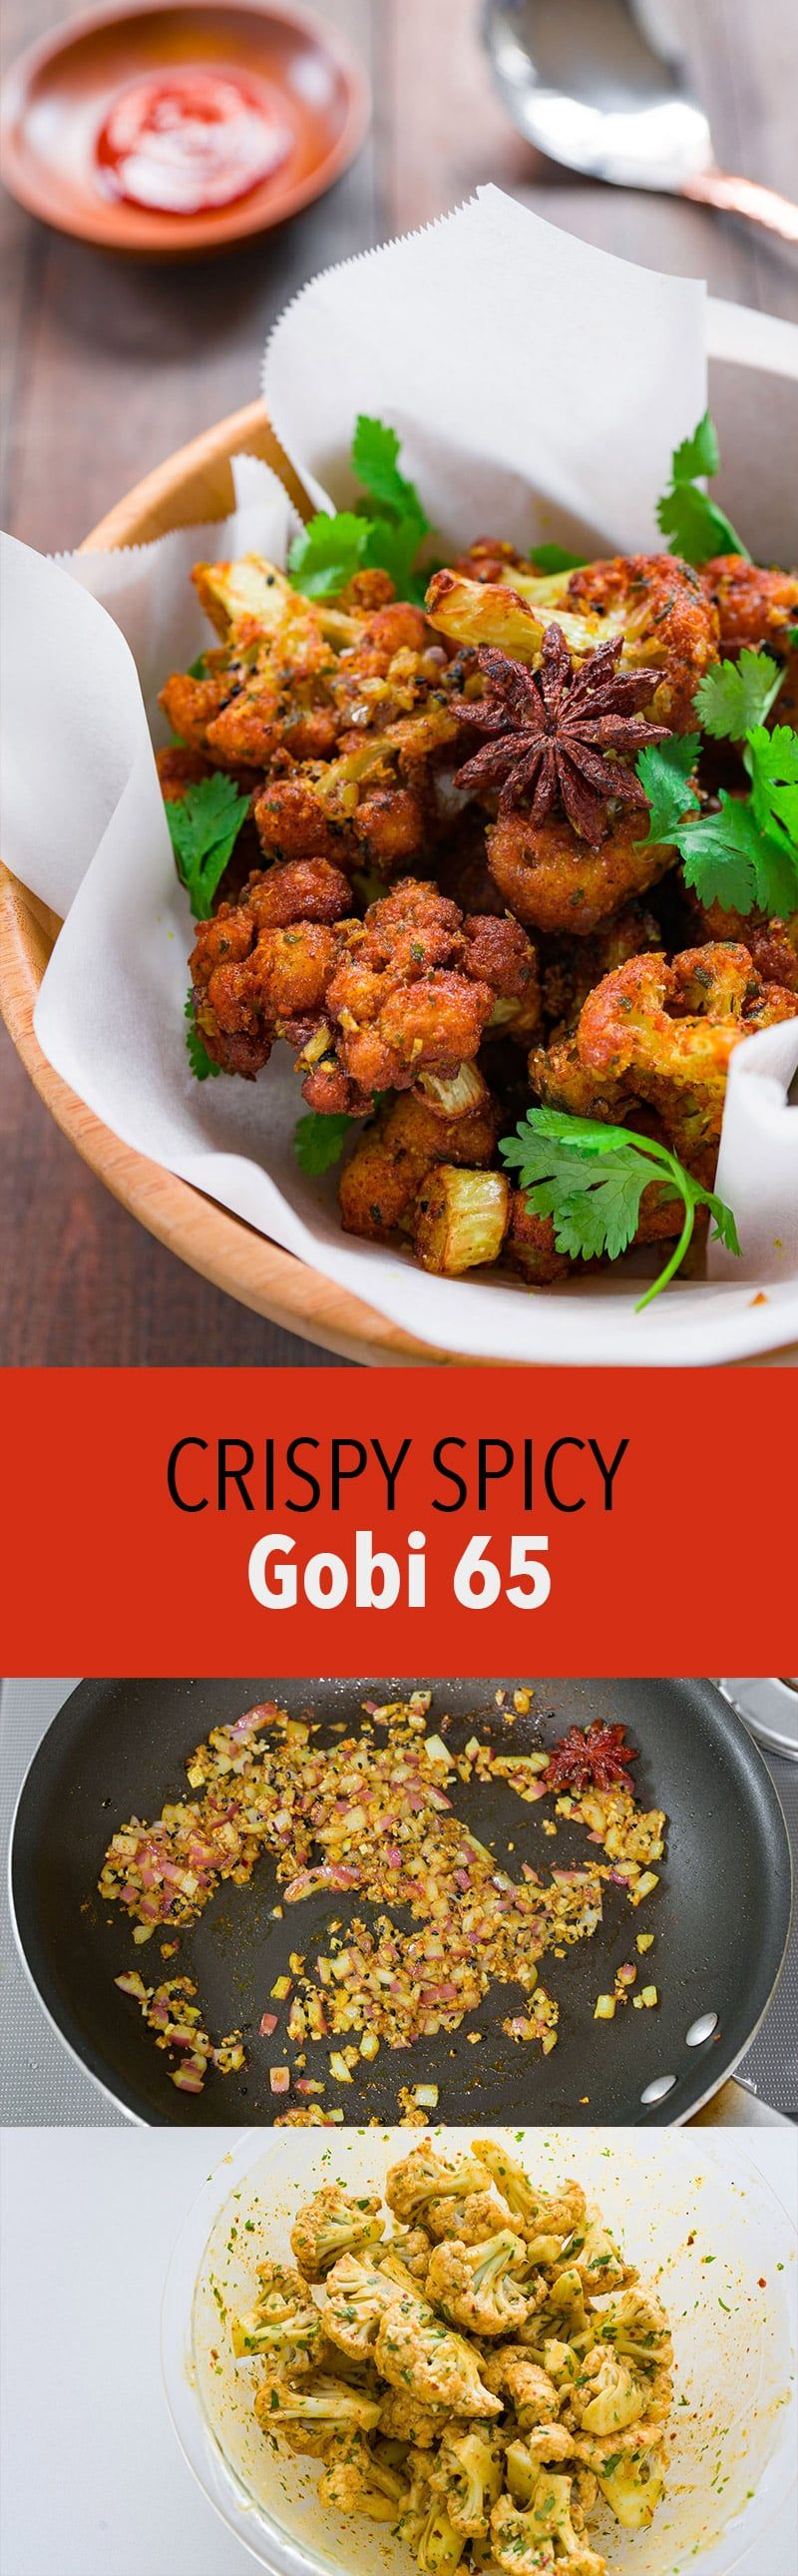 Gobi 65 (Cauliflower 65) is the consumate bar-snack of Chennai with crisp florets of cauliflower tossed with tempered spices and aromatics.